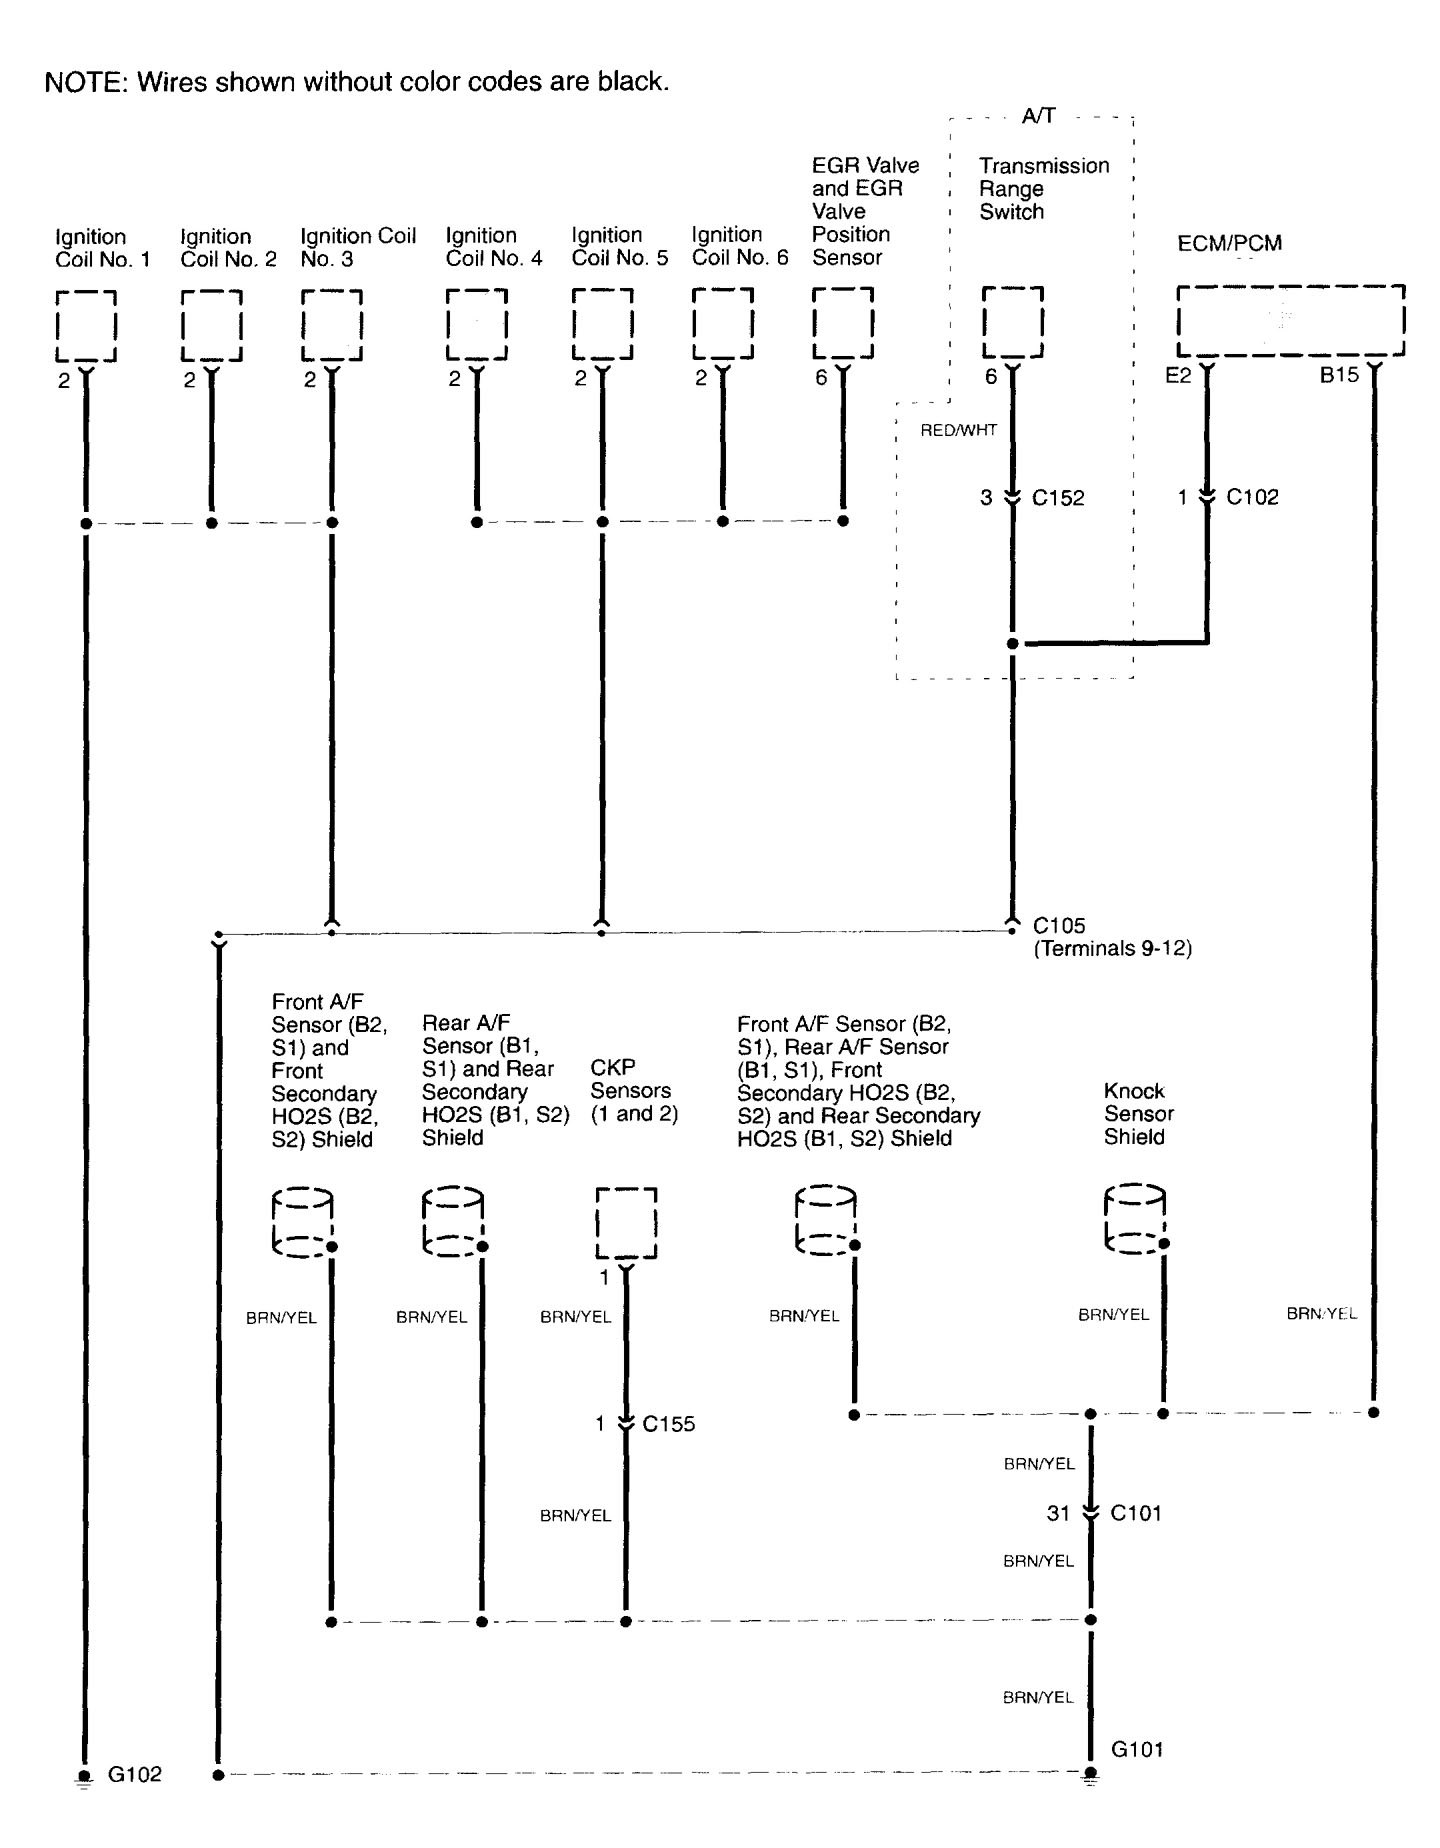 acura tl wiring diagram ground distribution v1 1 2003 2003 acura cl diagram 2003 acura cl stereo wiring diagram \u2022 free Ignition Coil Wiring at bakdesigns.co